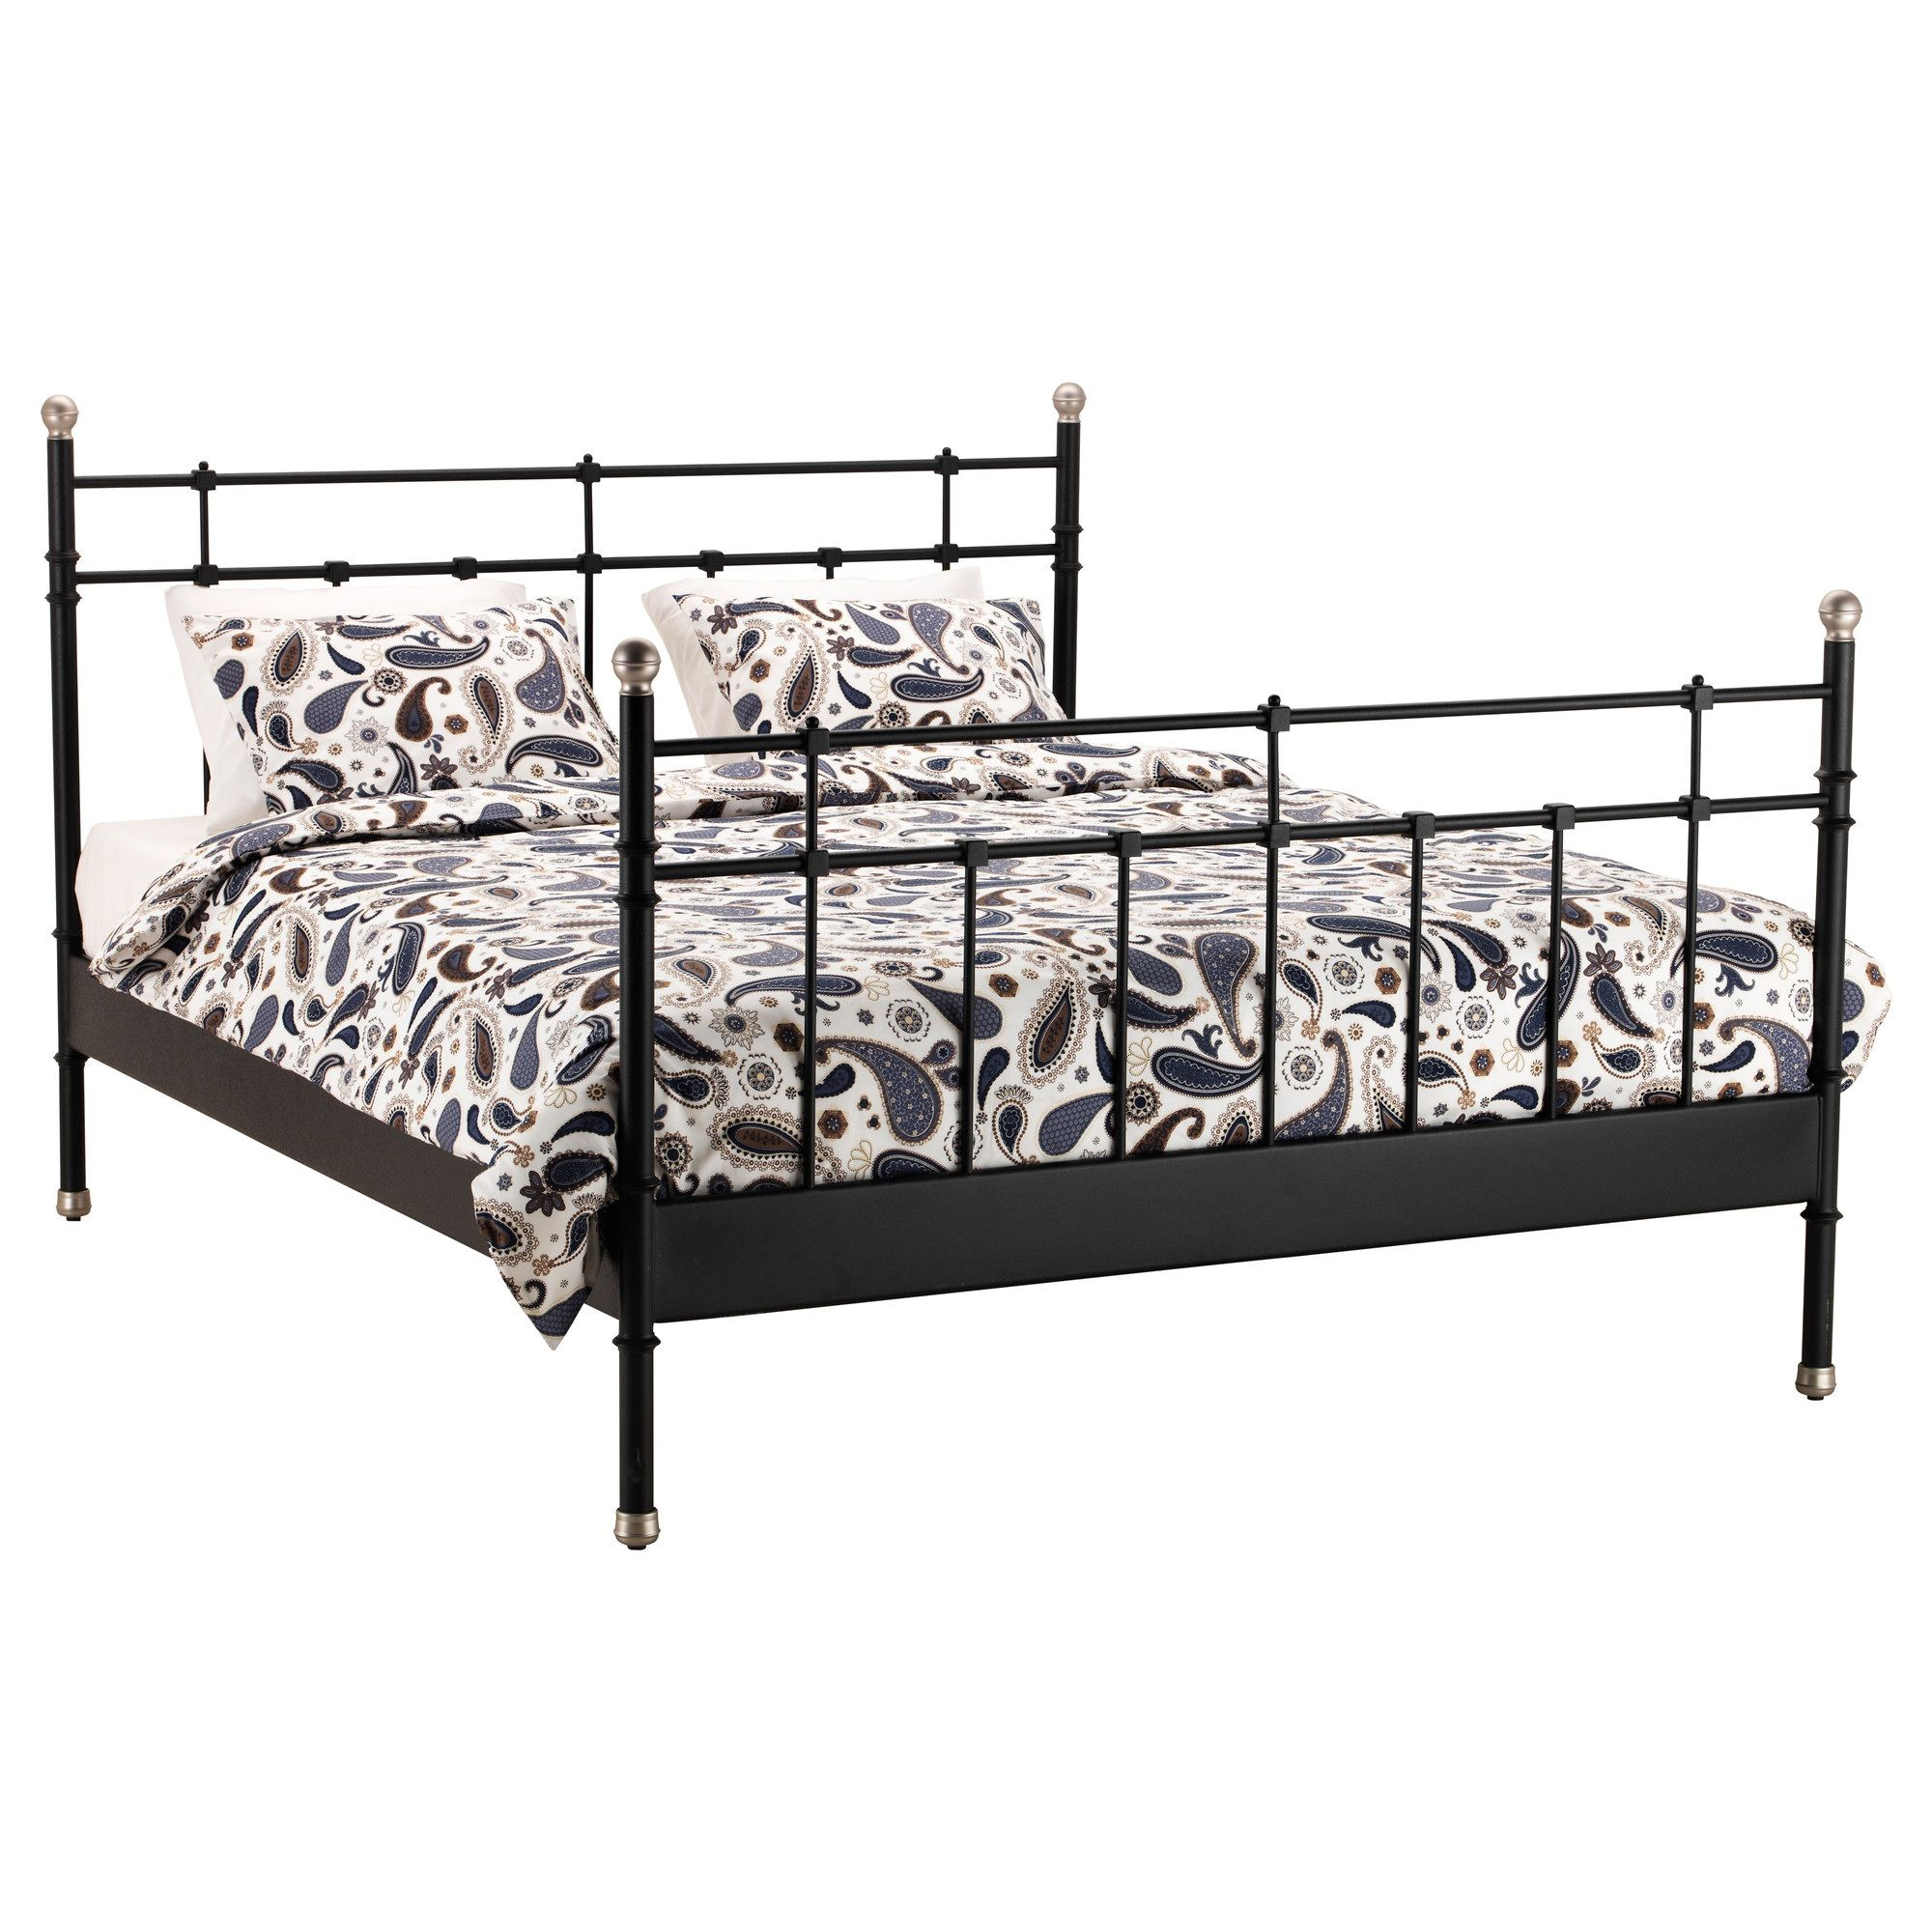 Surprising Ikea Metal Bed Frame Ikea Metal Bed Frame Ikea Metal Bed Metal Bed Frame